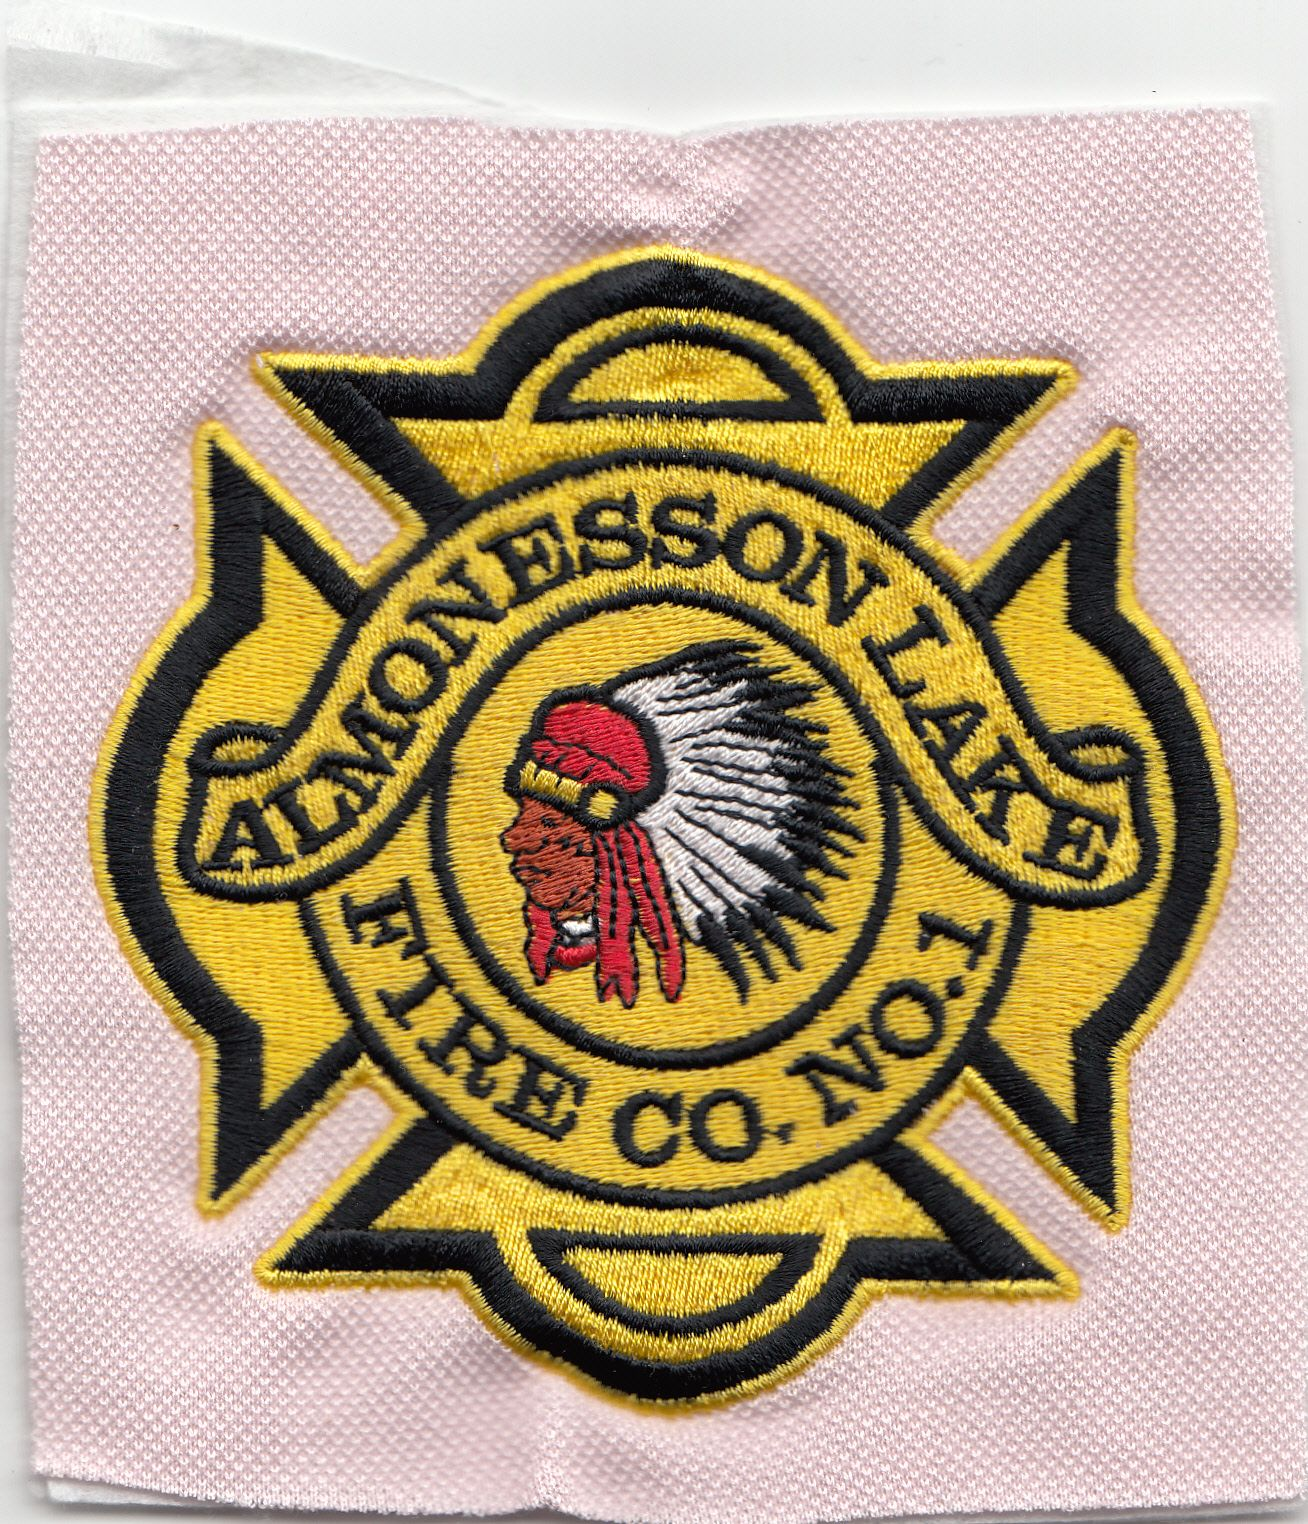 Almonesson Lake Fire Co No1 Embroidery Digitizing Designs 24by7